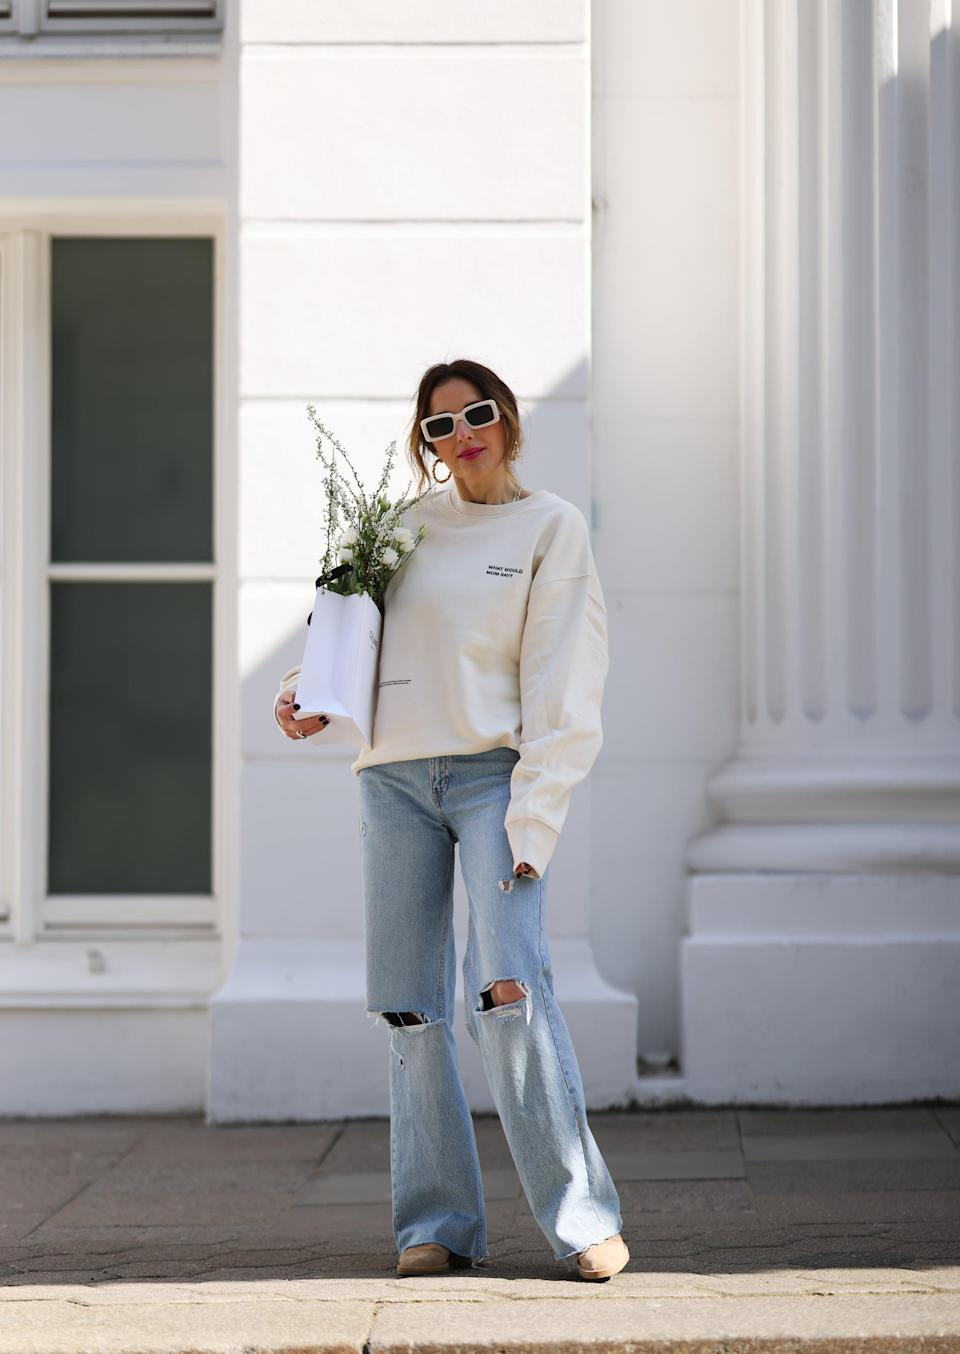 <p>Channel laidback '90s style with a sweatshirt and flats.</p>